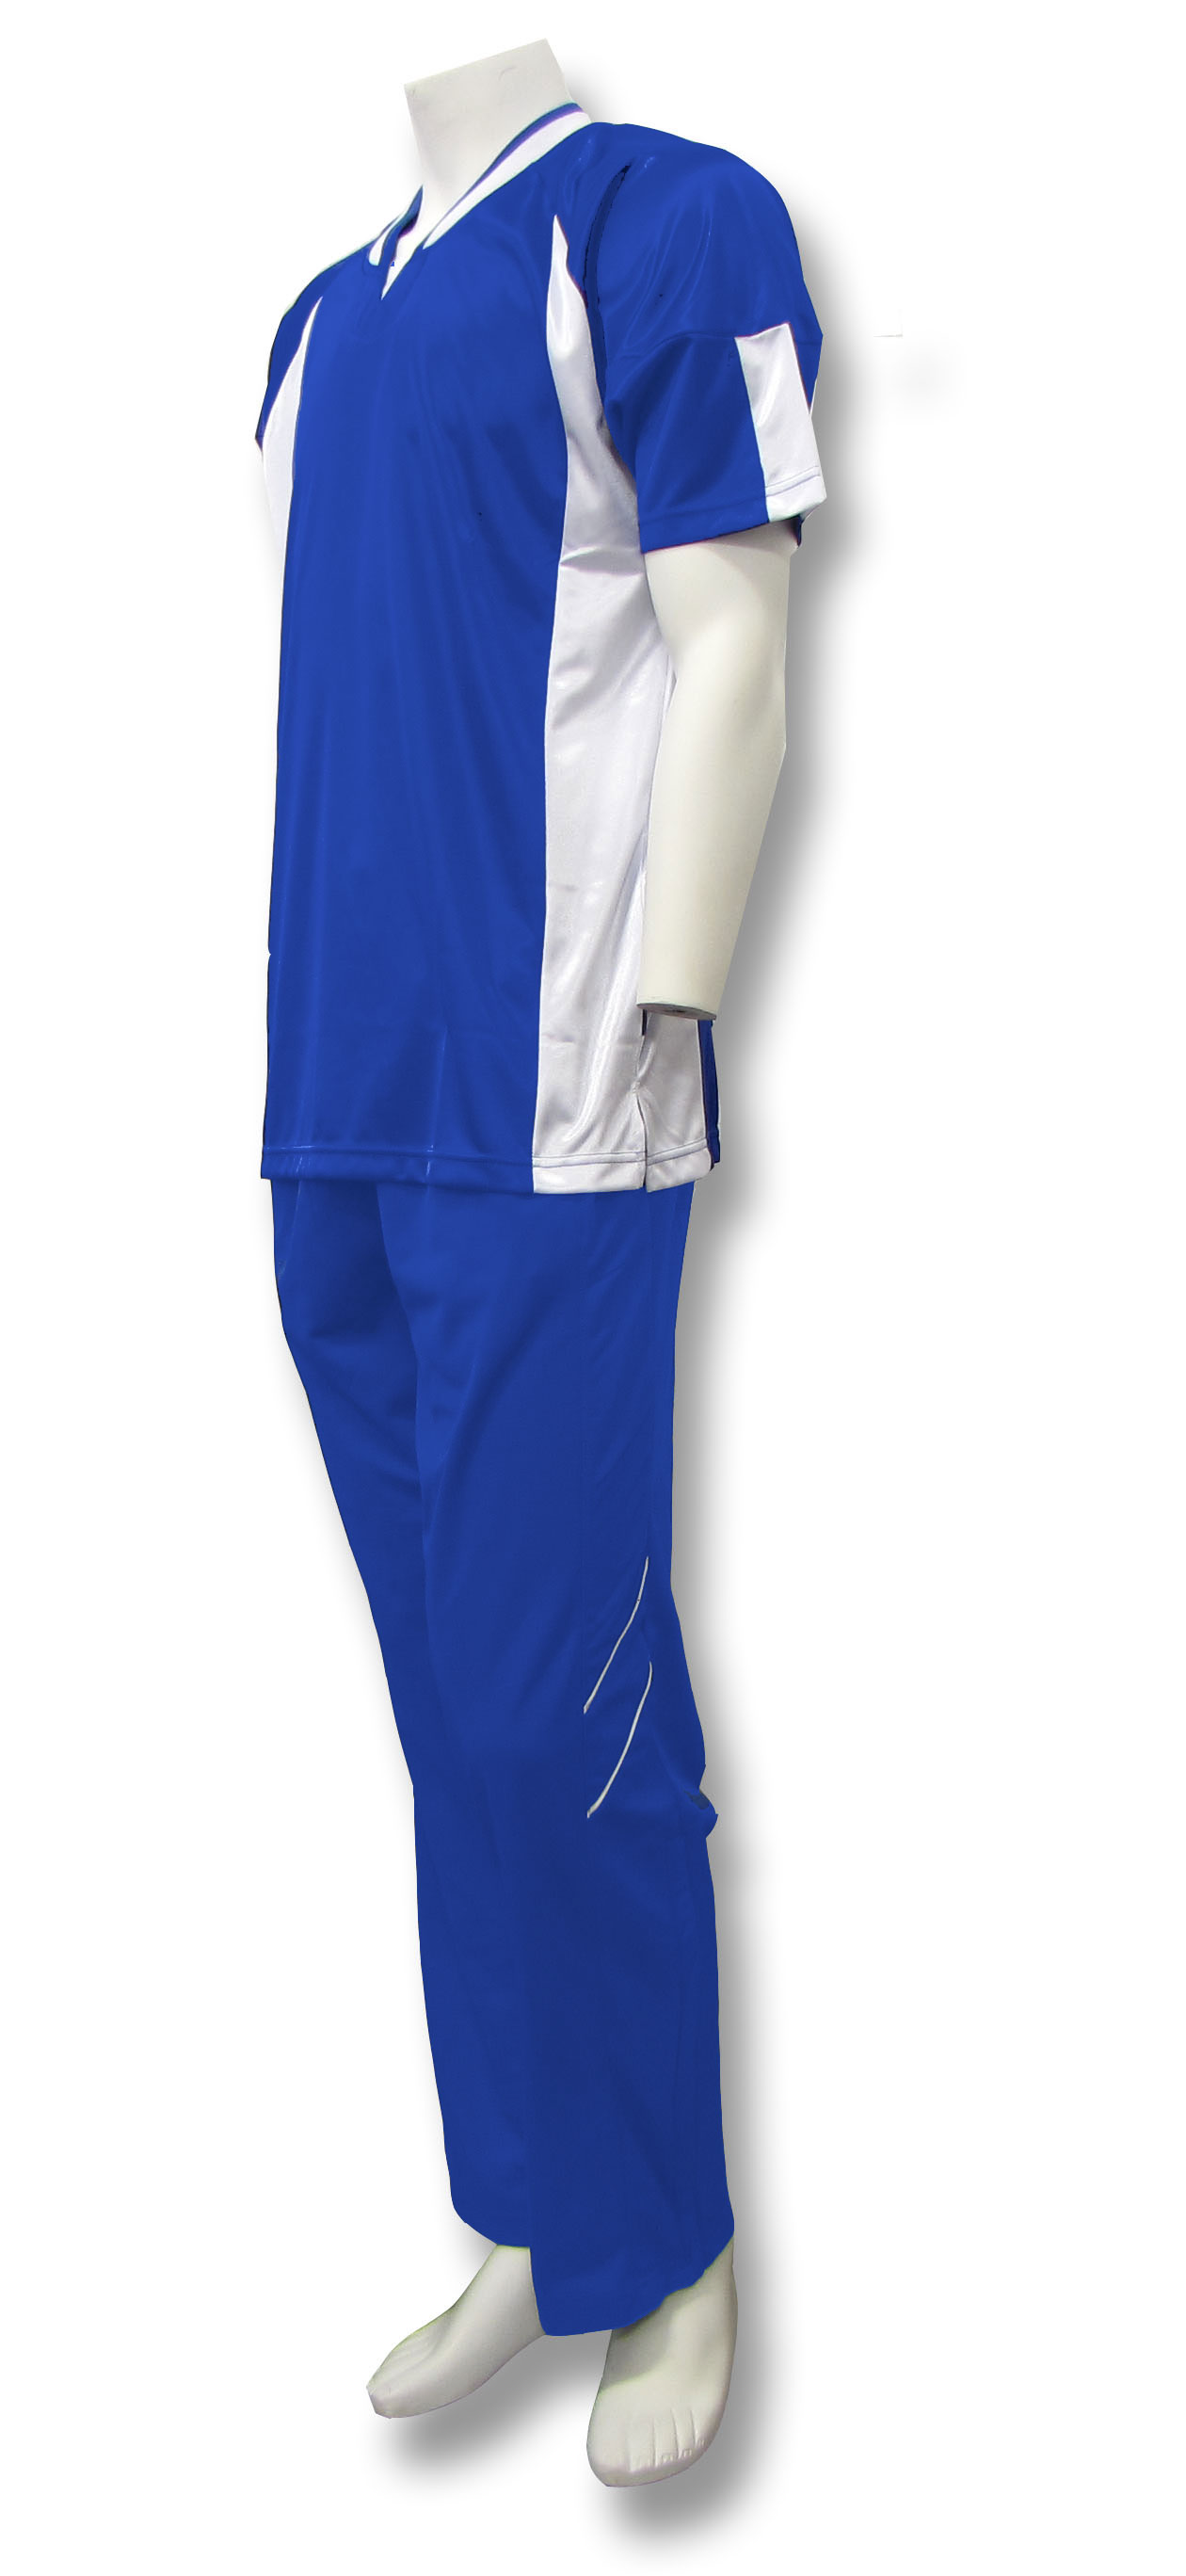 Elite basketball warm ups in royal/white by Code Four Athletics